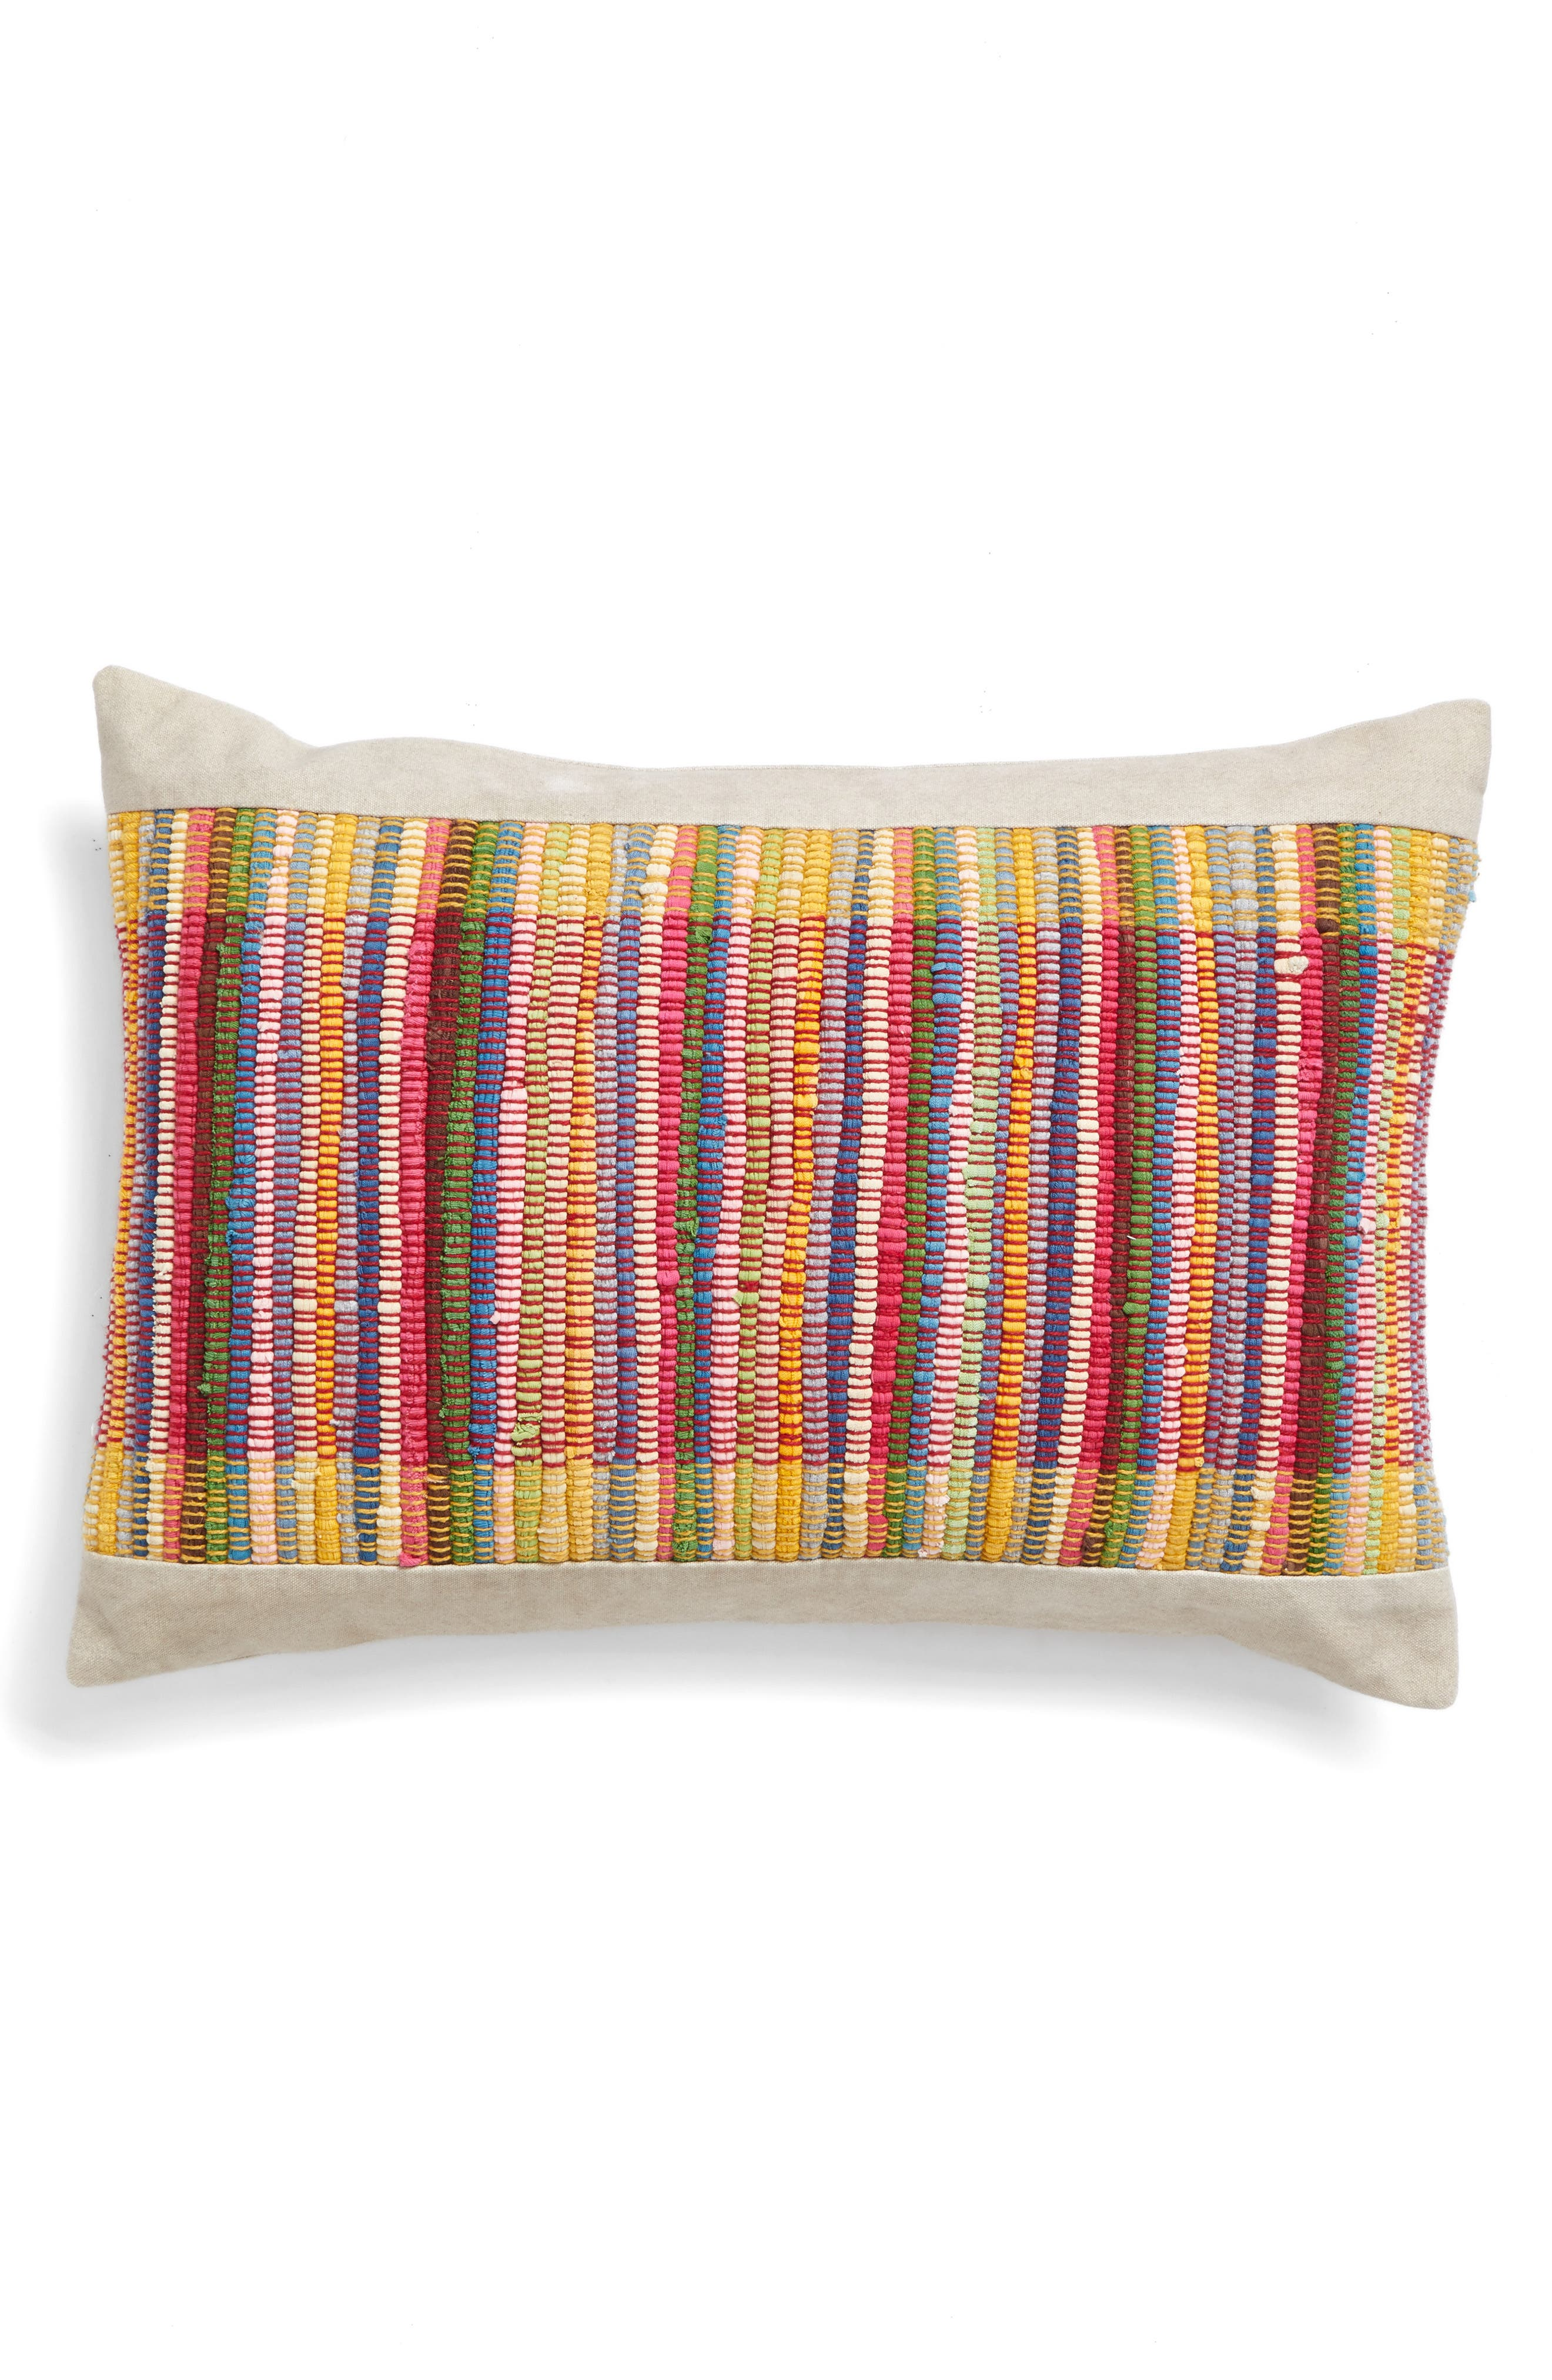 Nordstrom at Home Woven Accent Pillow